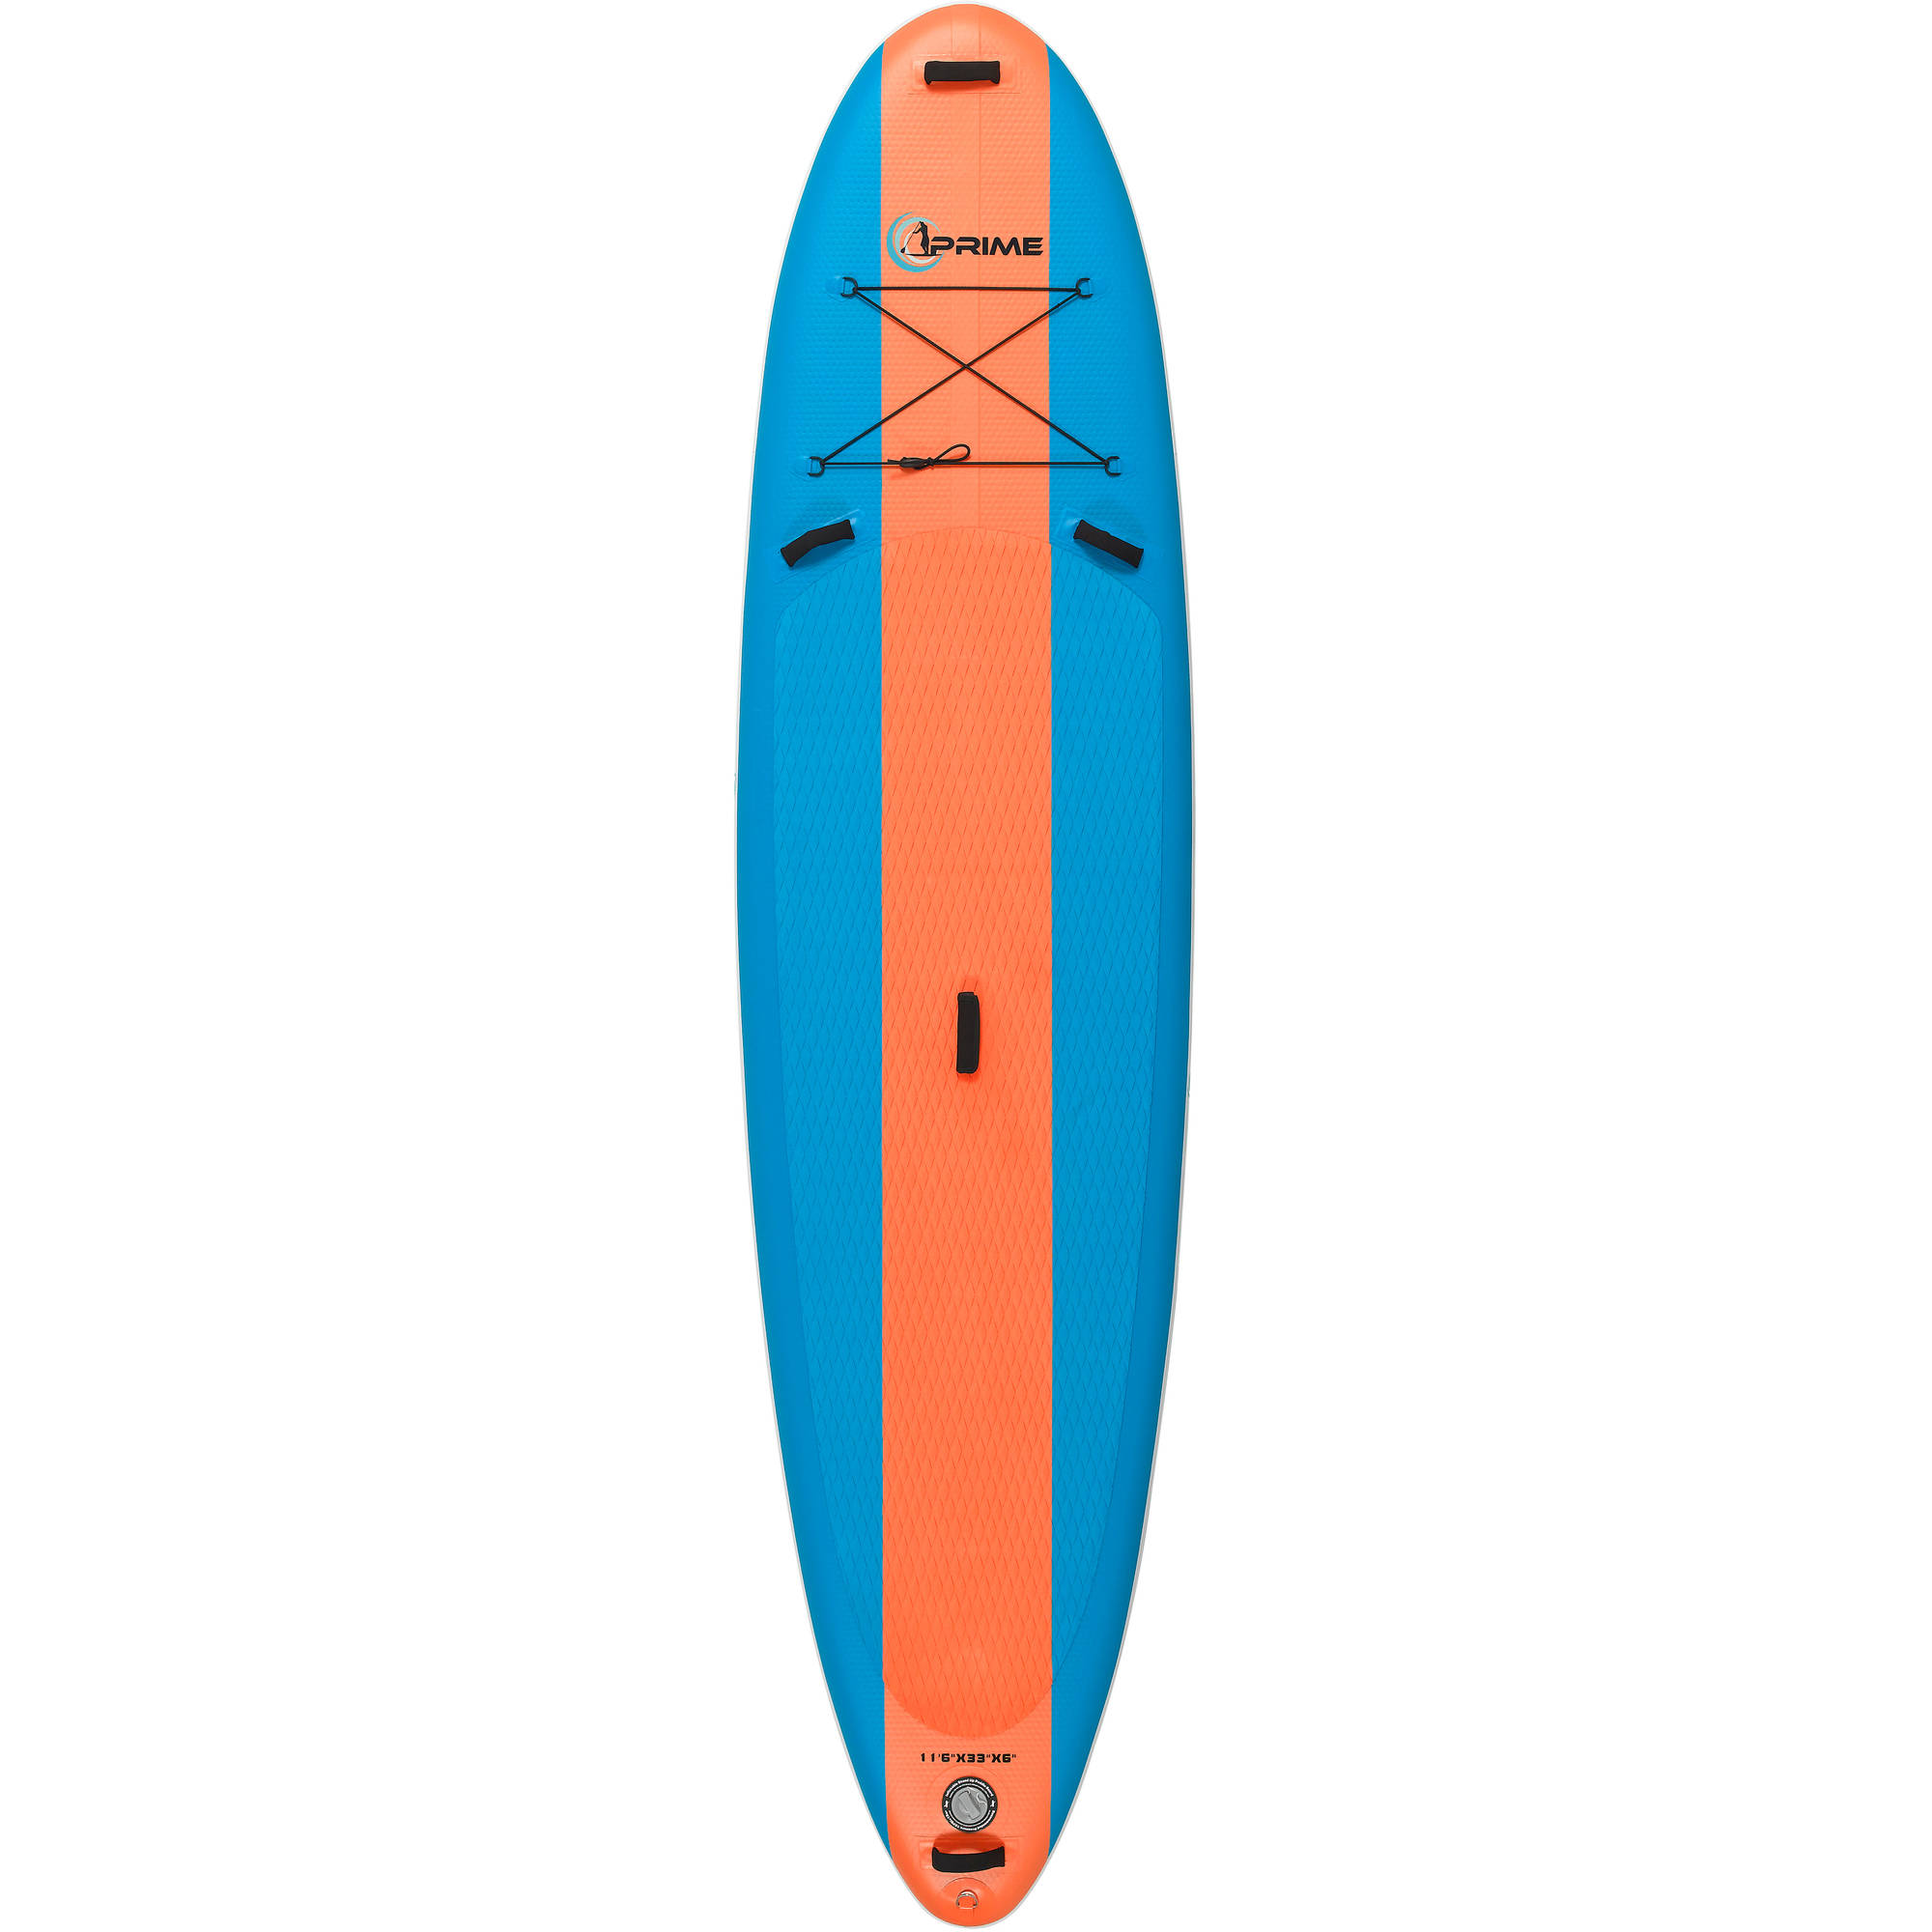 Click here to buy Prime Paddle Boards 11'6 Inflatable SUP Package with Board, Adjustable Paddle, High Pressure Pump, Travel bag, Fins and....